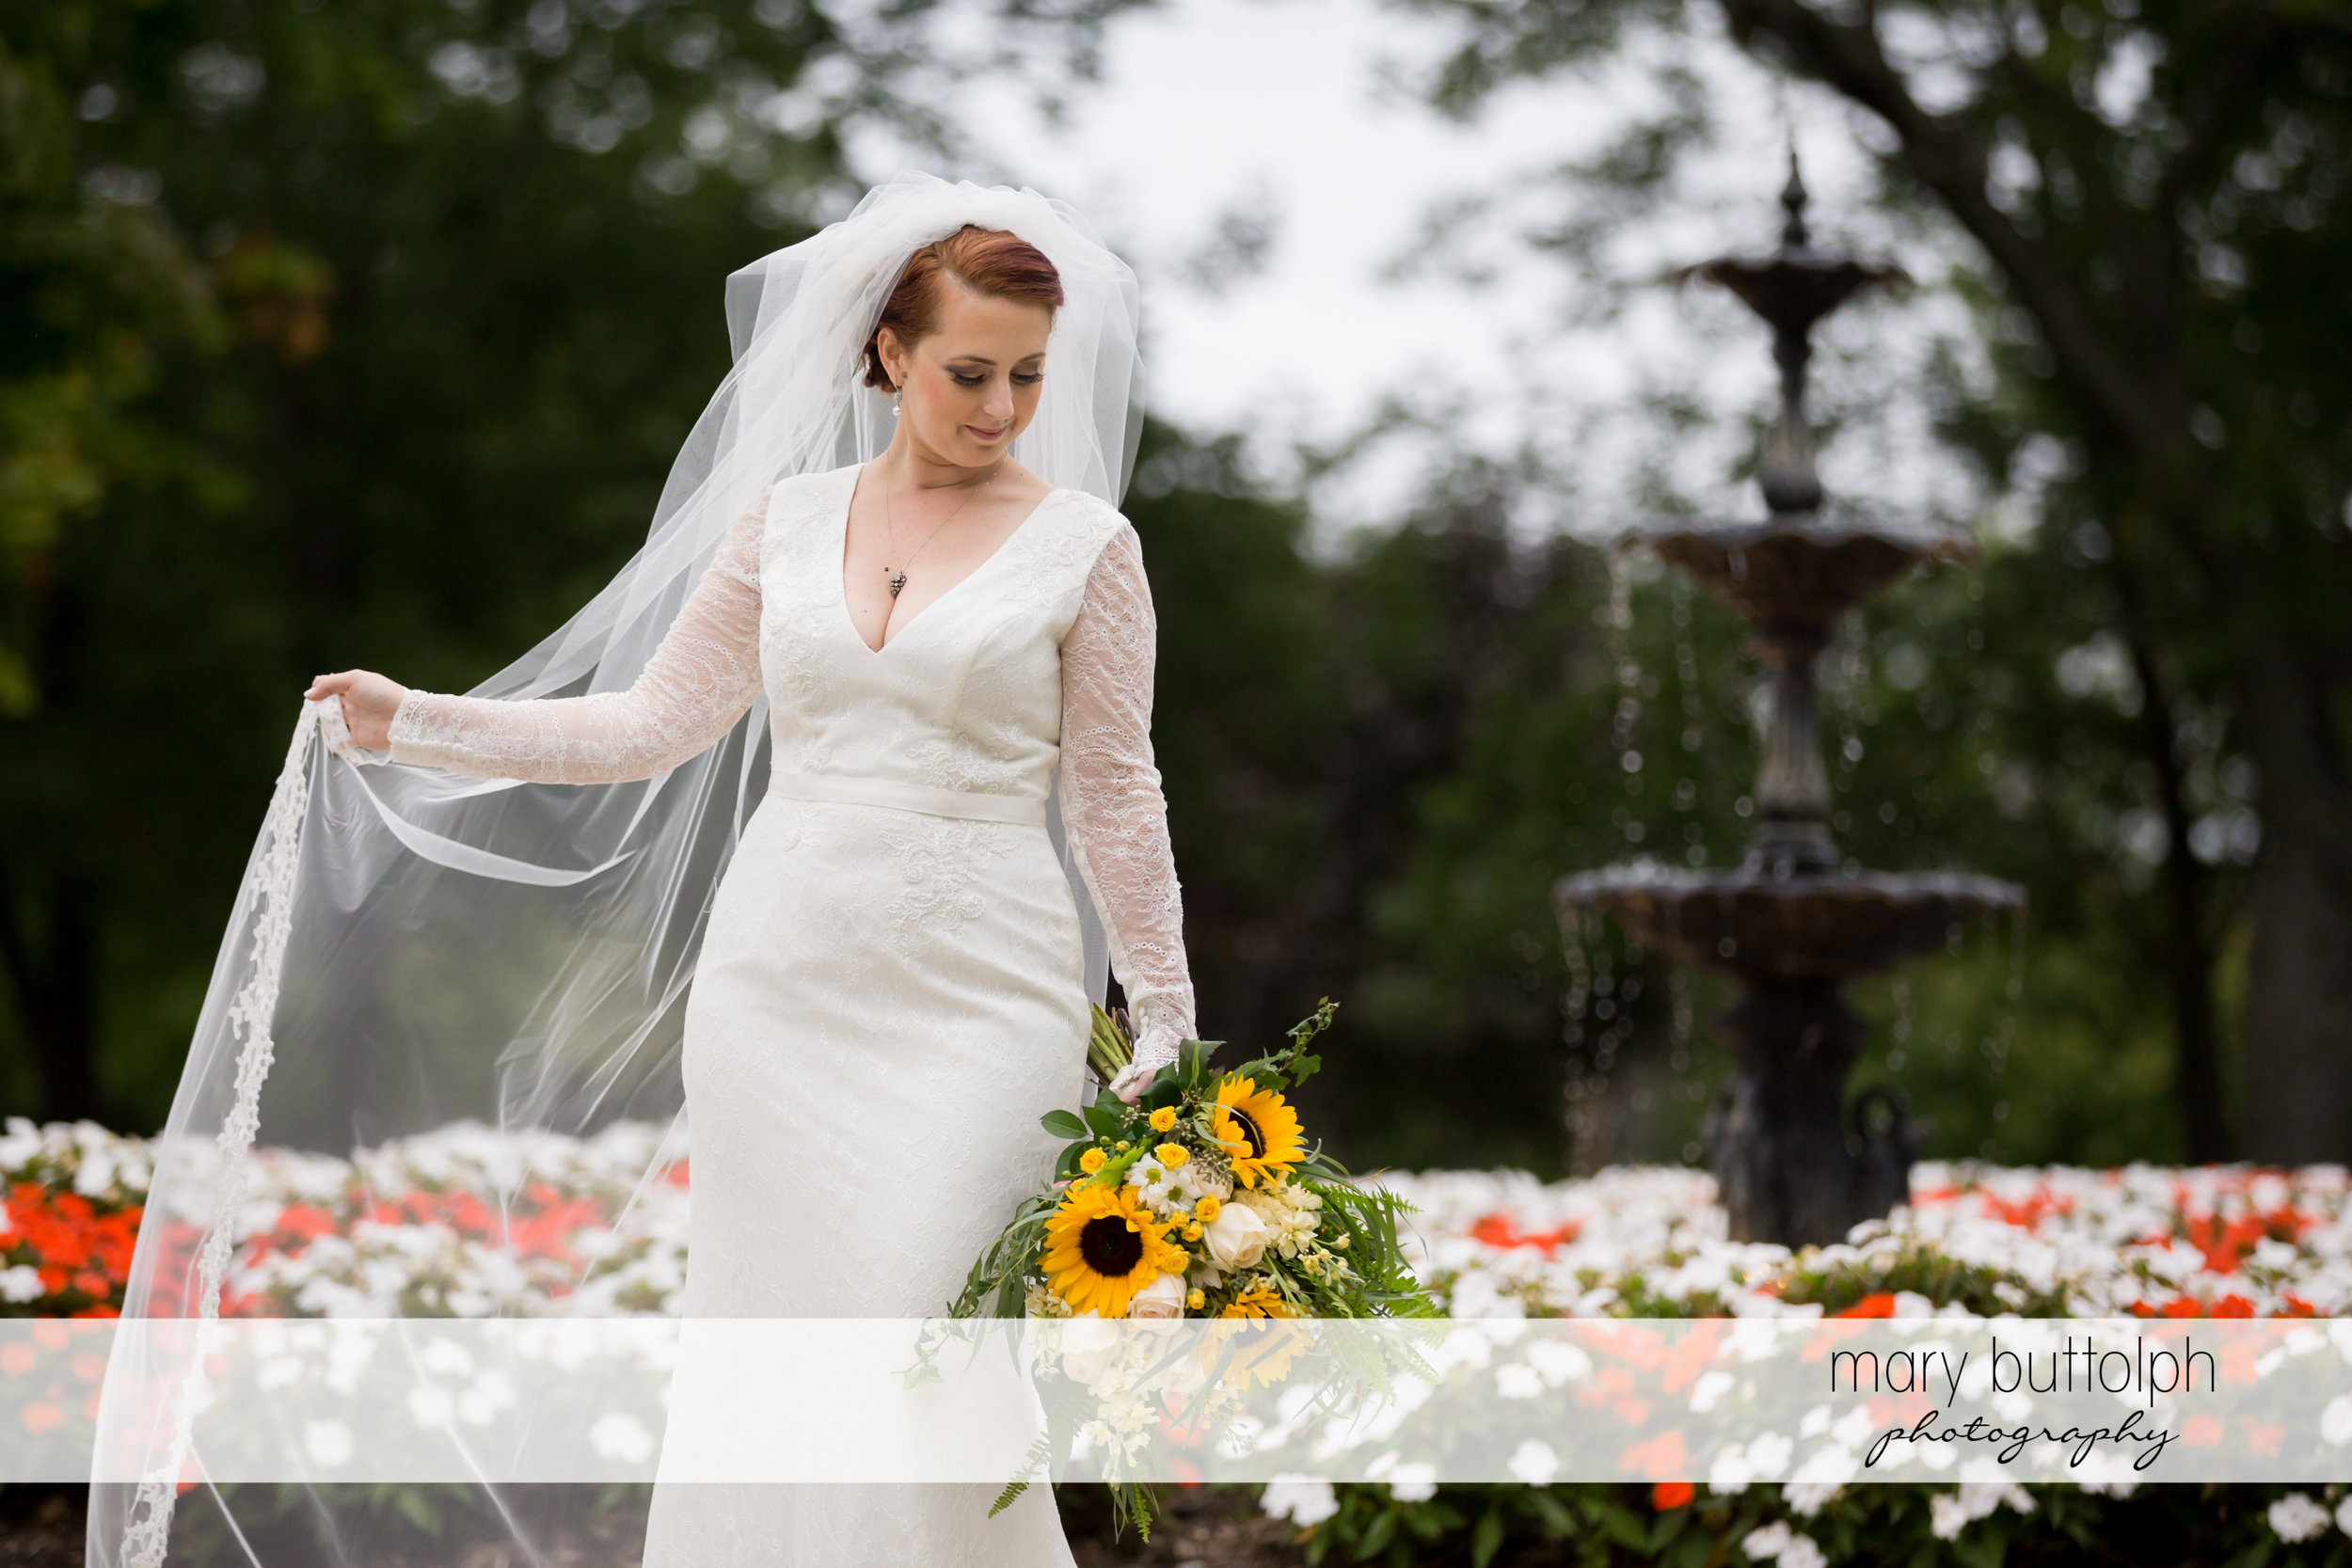 Bride strikes a pose while holding sunflowers in the garden at Emerson Park Pavilion Wedding